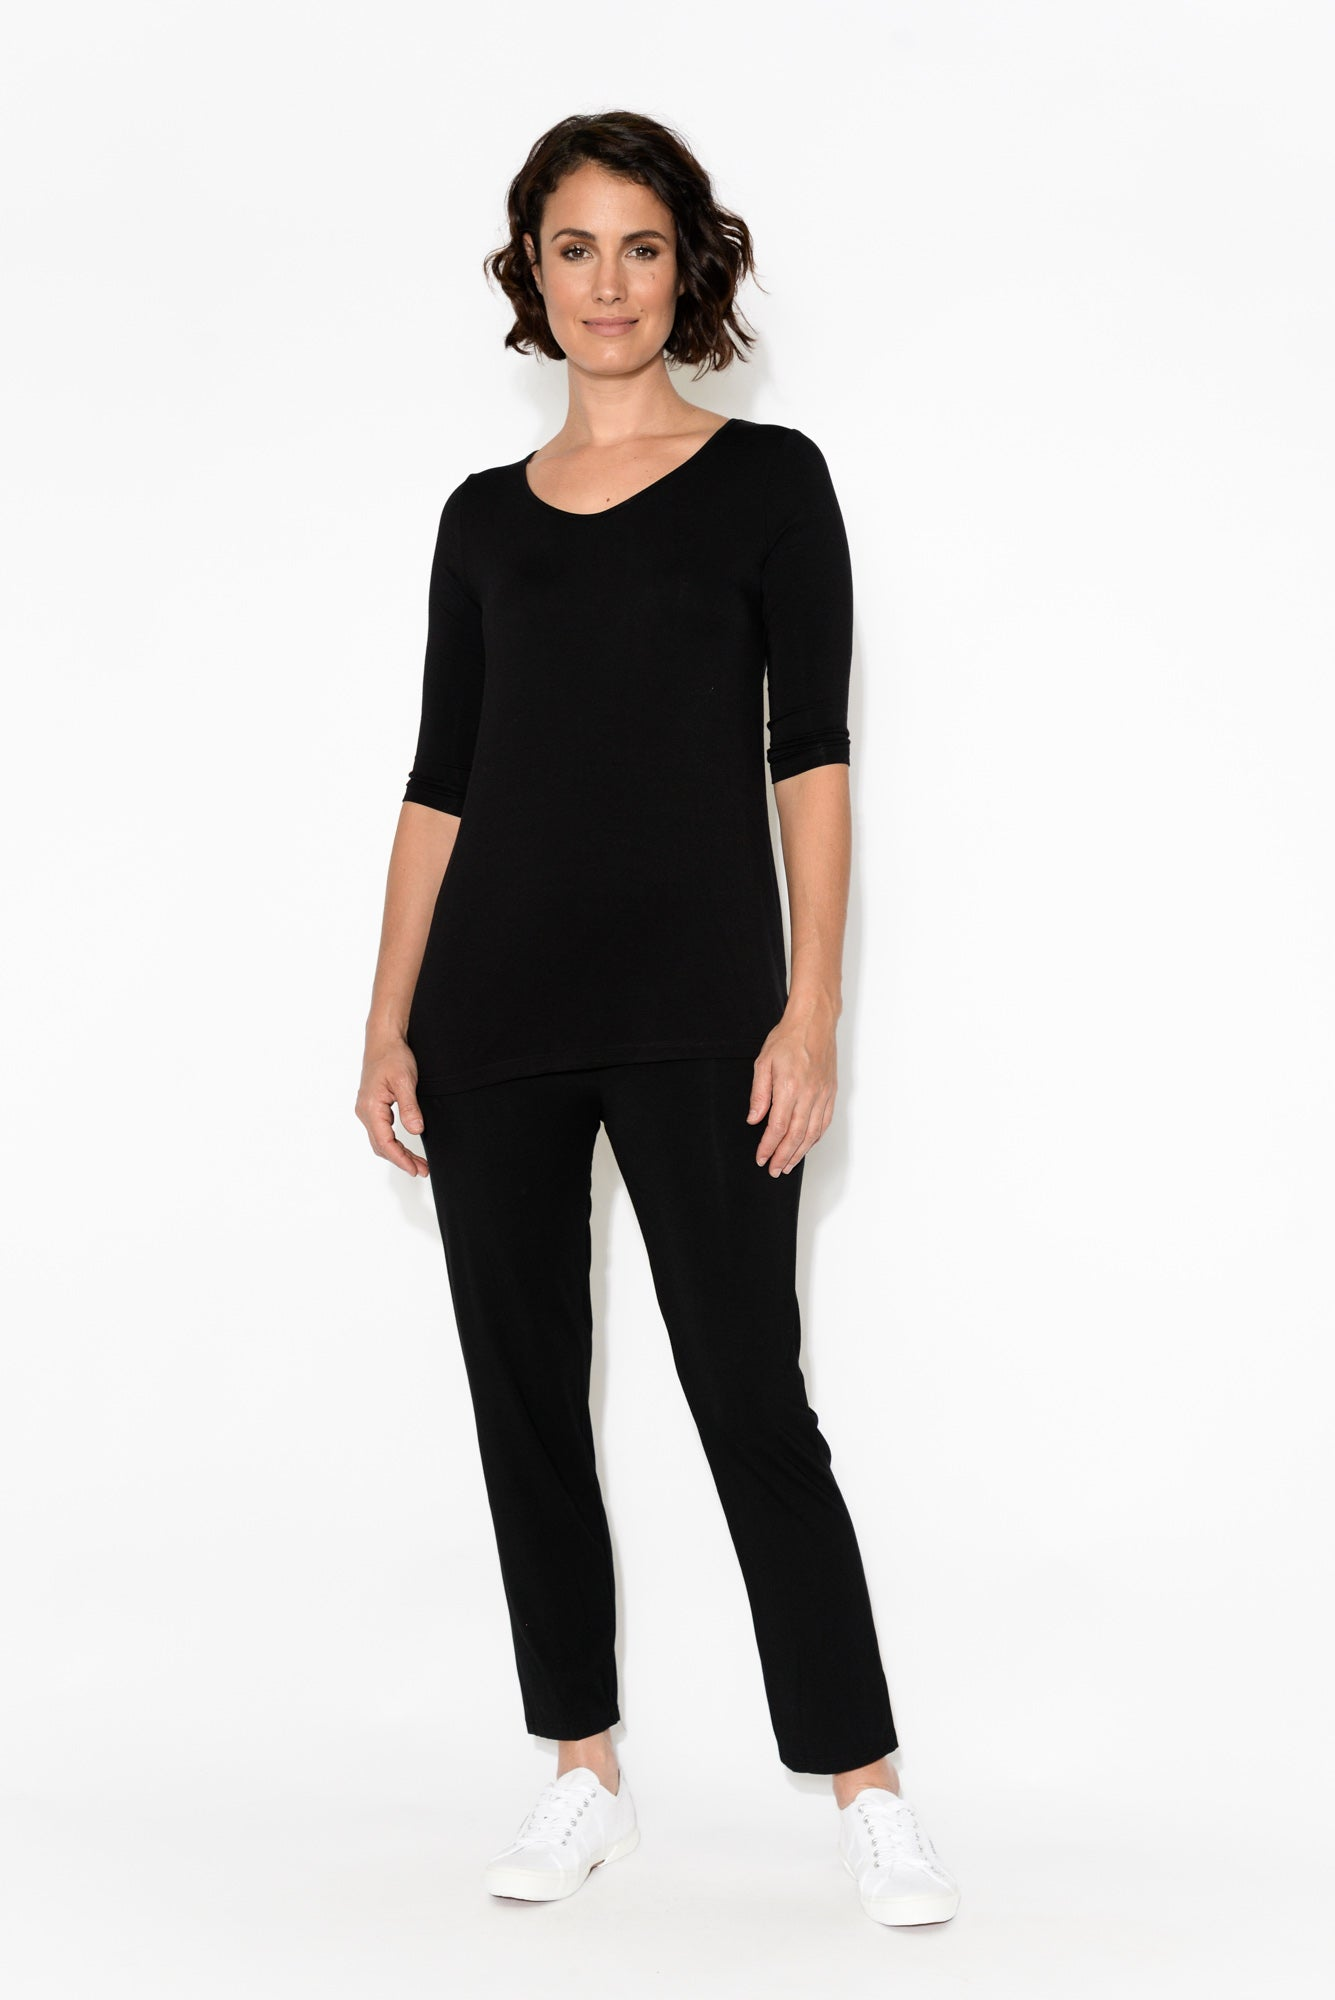 Women's Black Ponte Pants